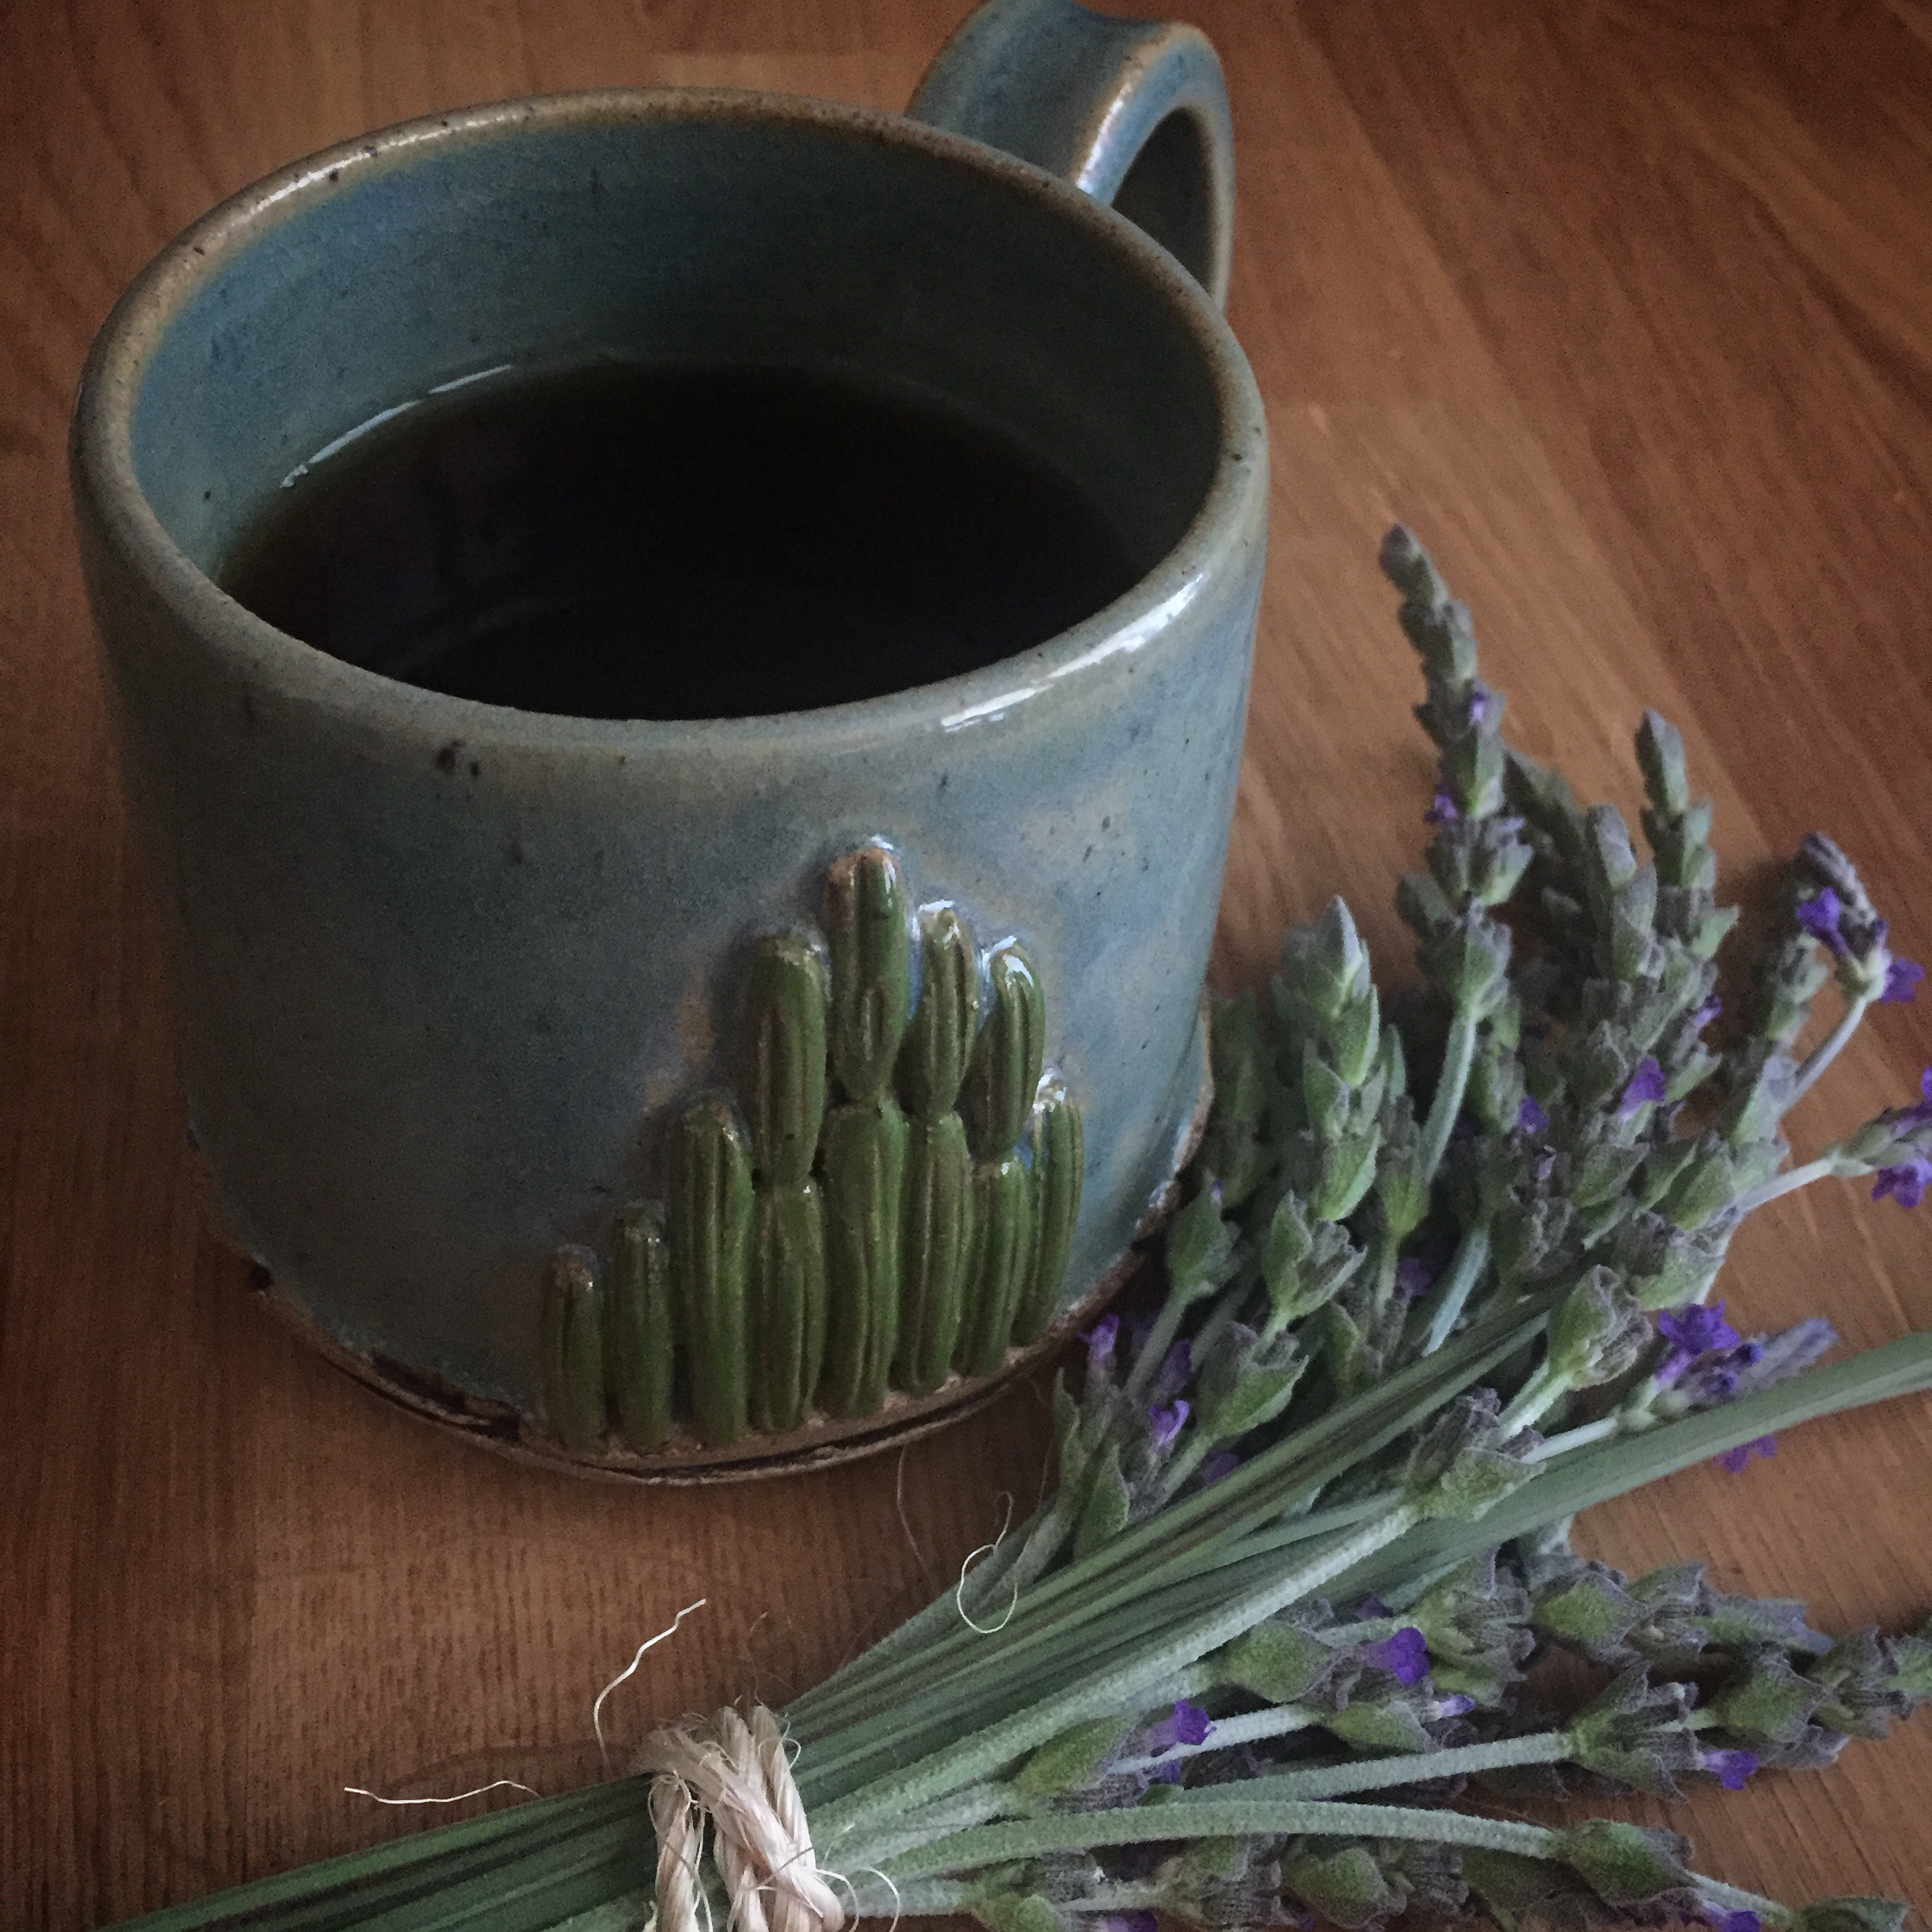 Mug handcrafted by Seedling Clayworks from Tucson, AZ